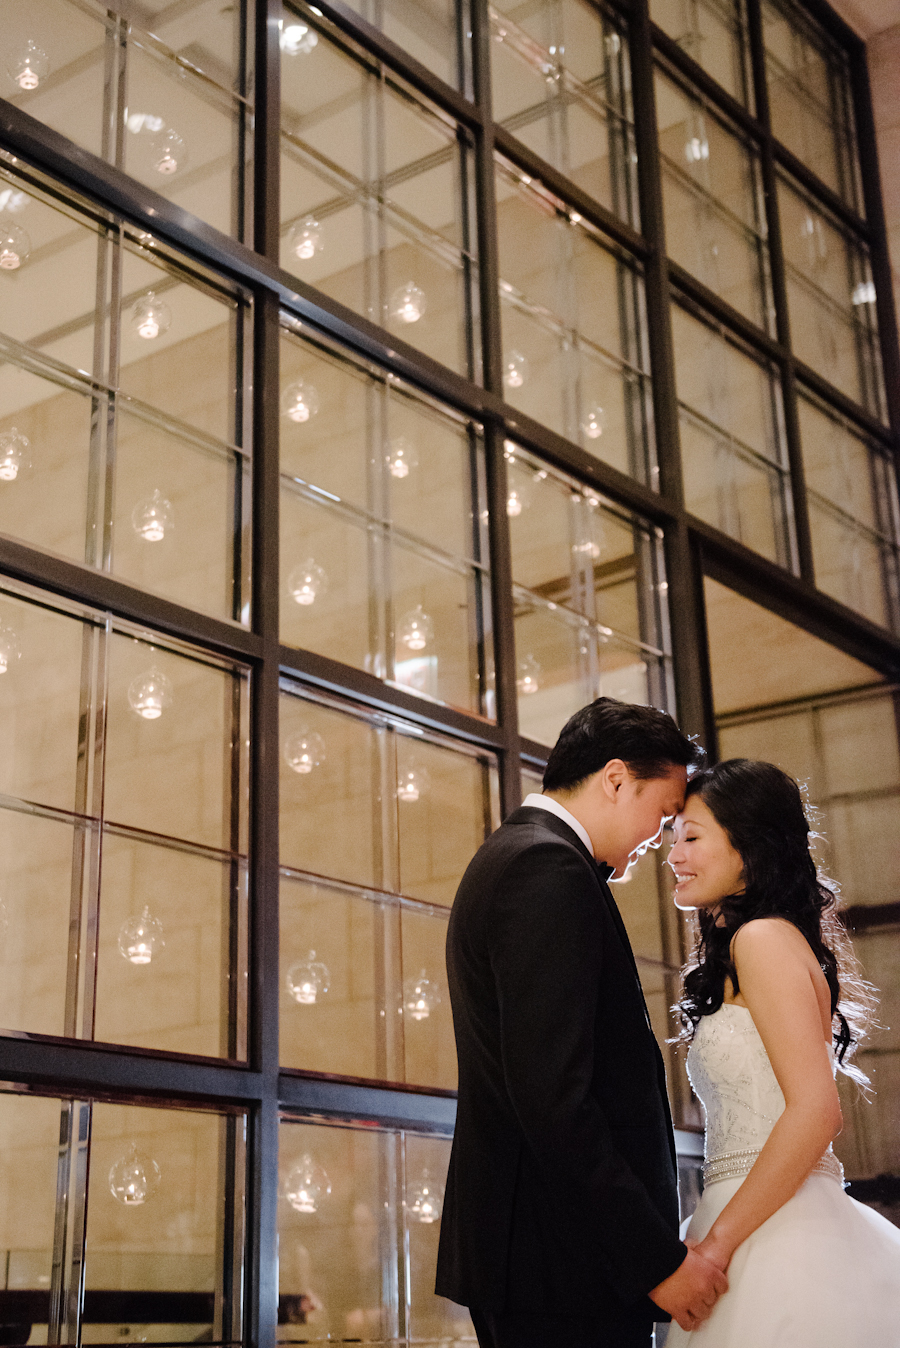 four seasons hotel wedding ang weddings and events brian hatton photography-40.jpg